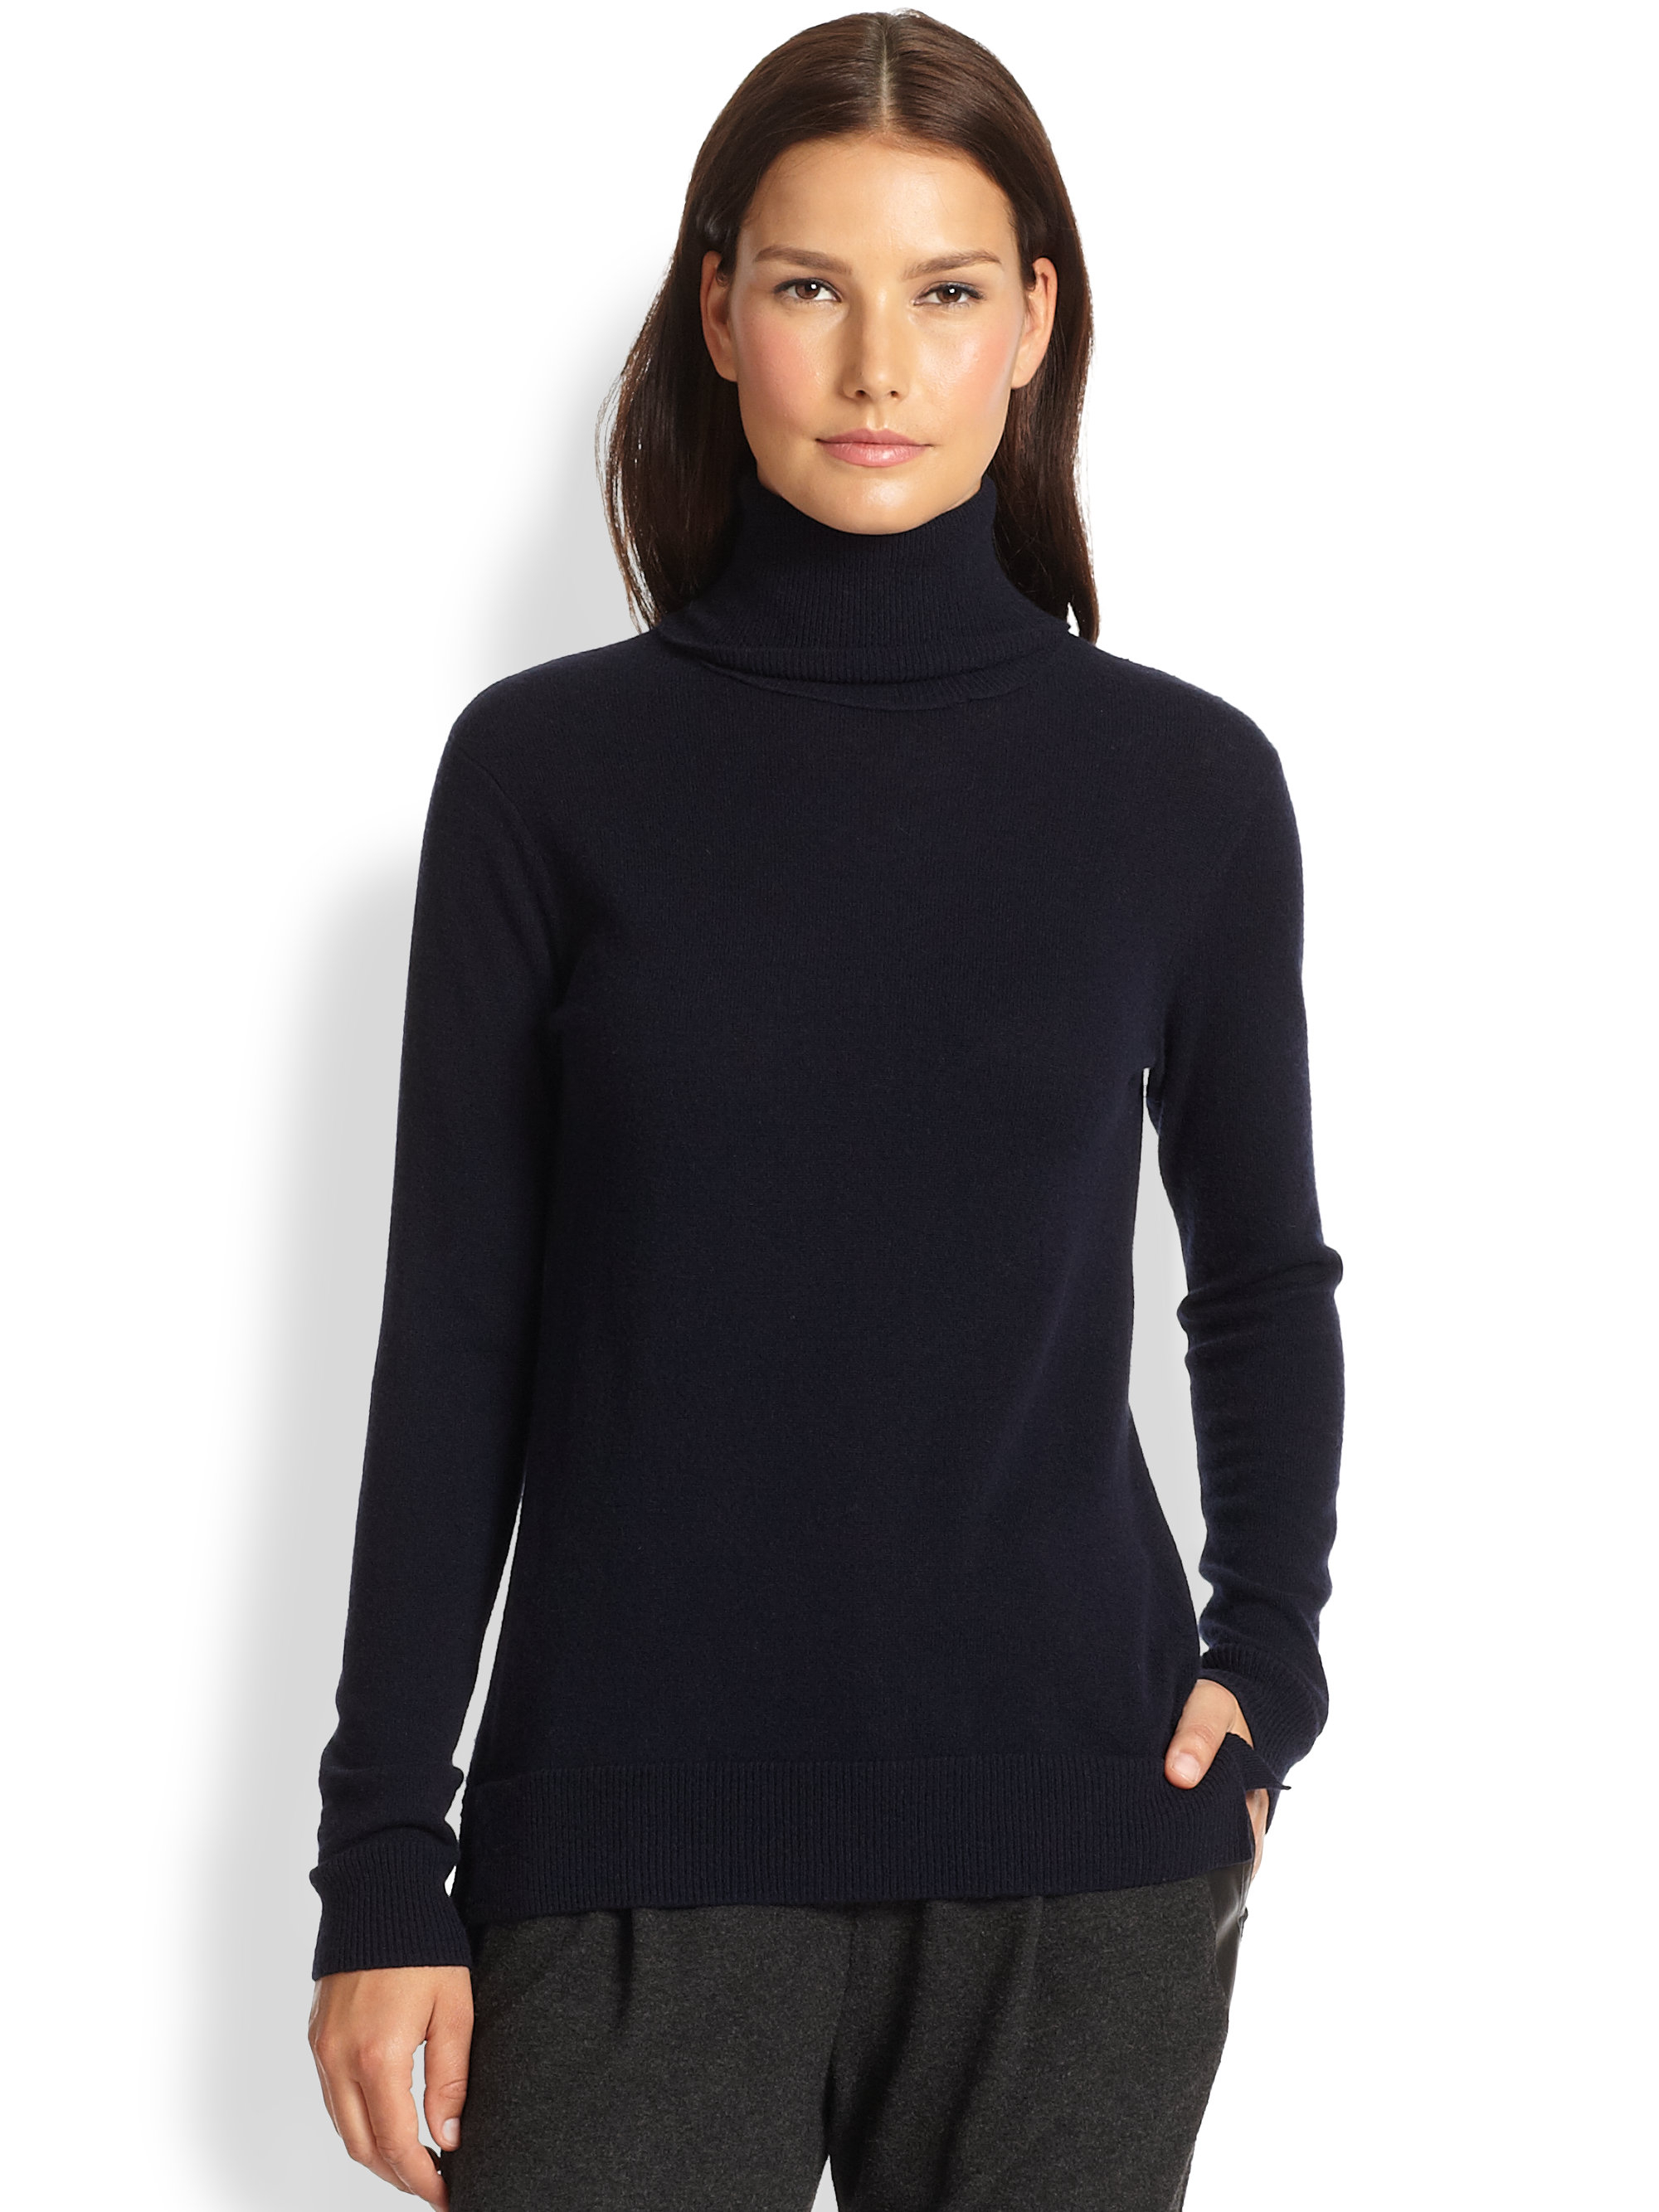 Nordstrom Cashmere Sweater